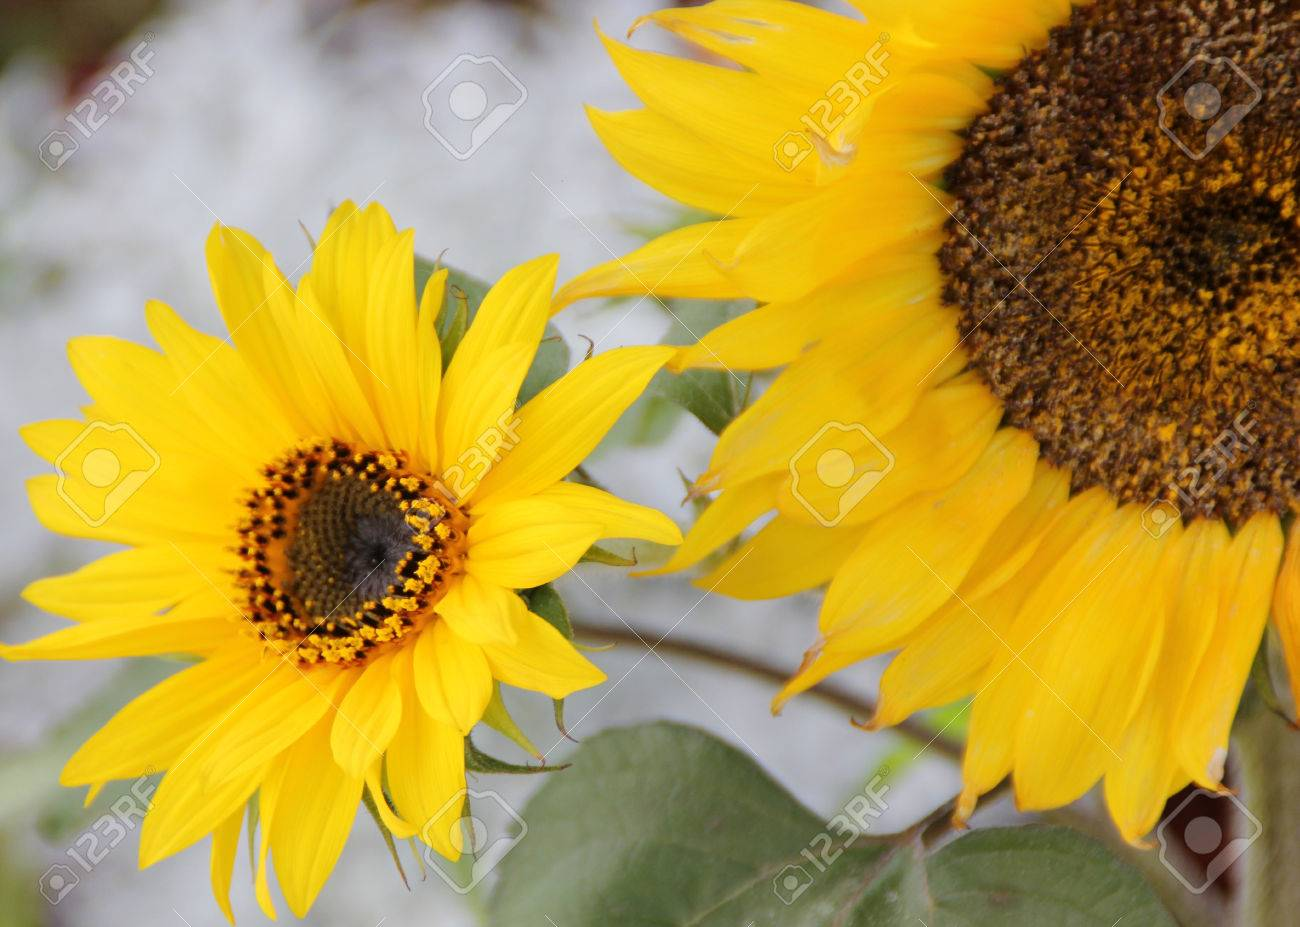 Helianthus Annuus Sunflower Cultivated Ornamental And Seed Stock